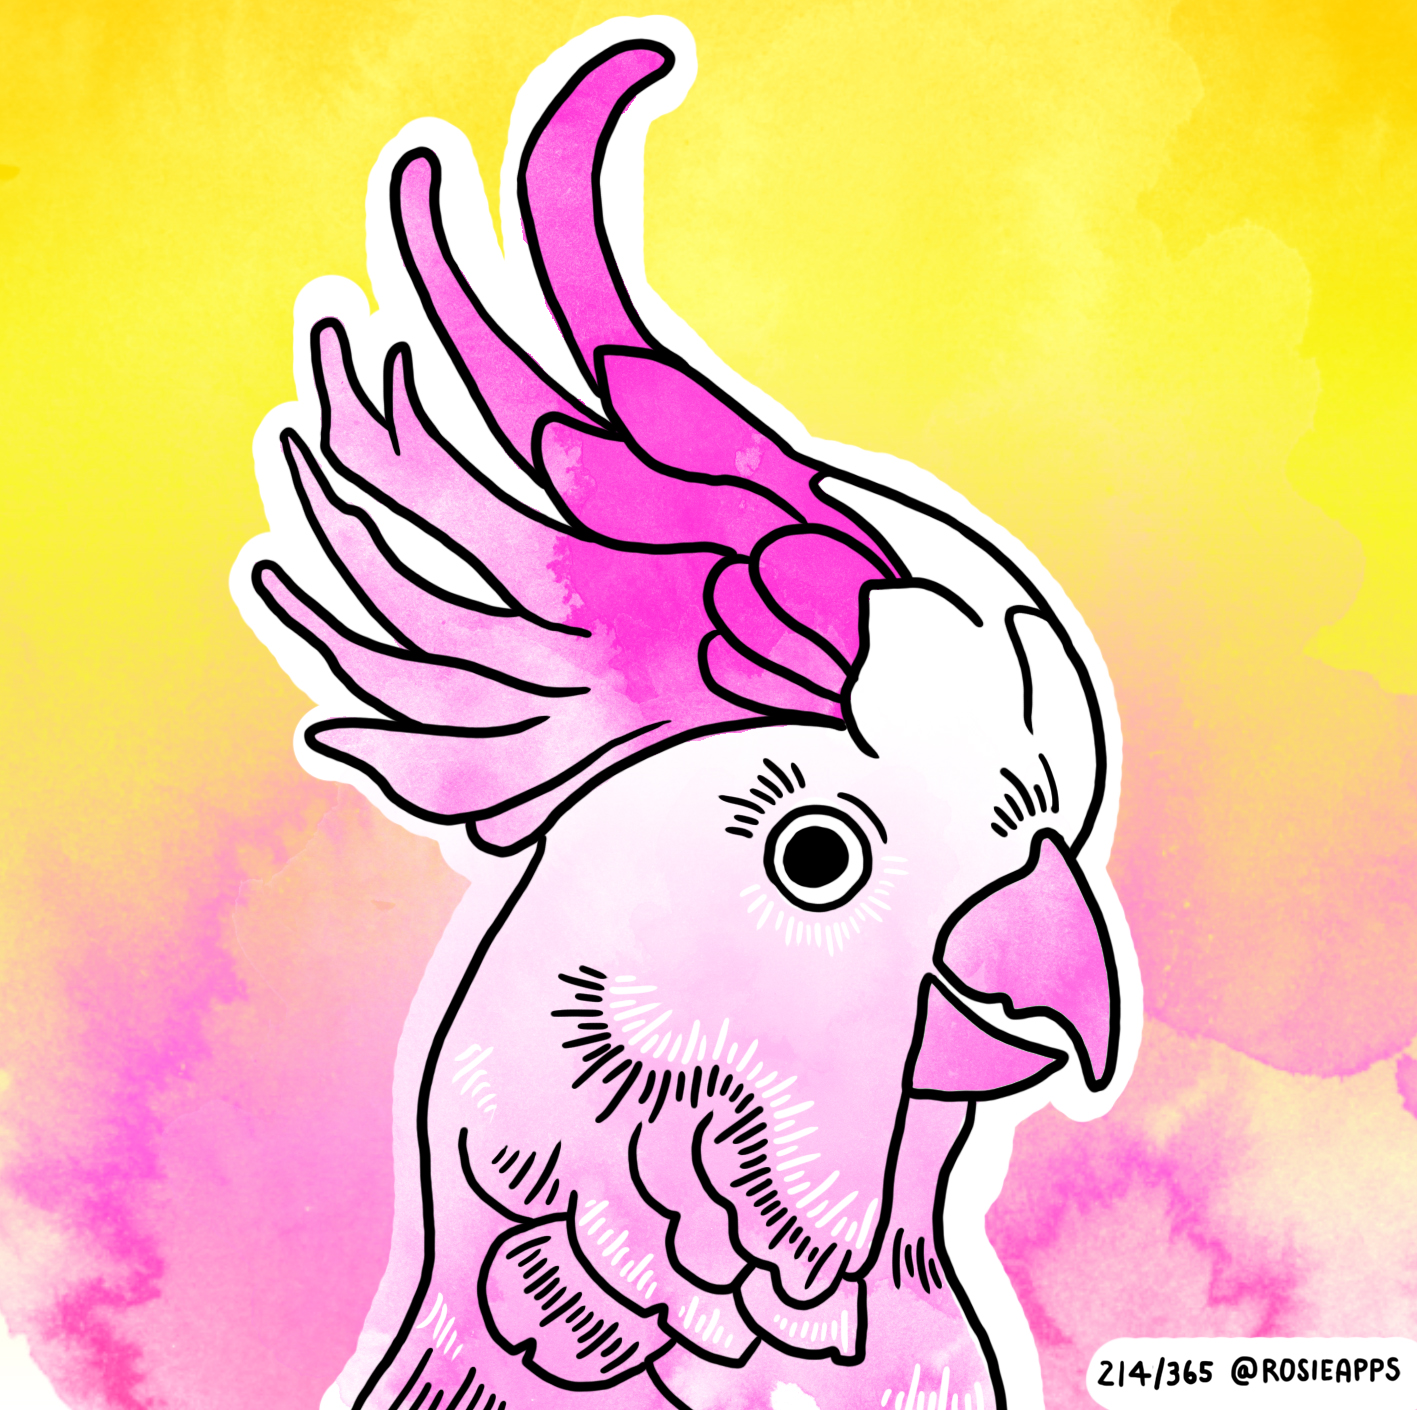 August-214-365 Cockatoo.jpg